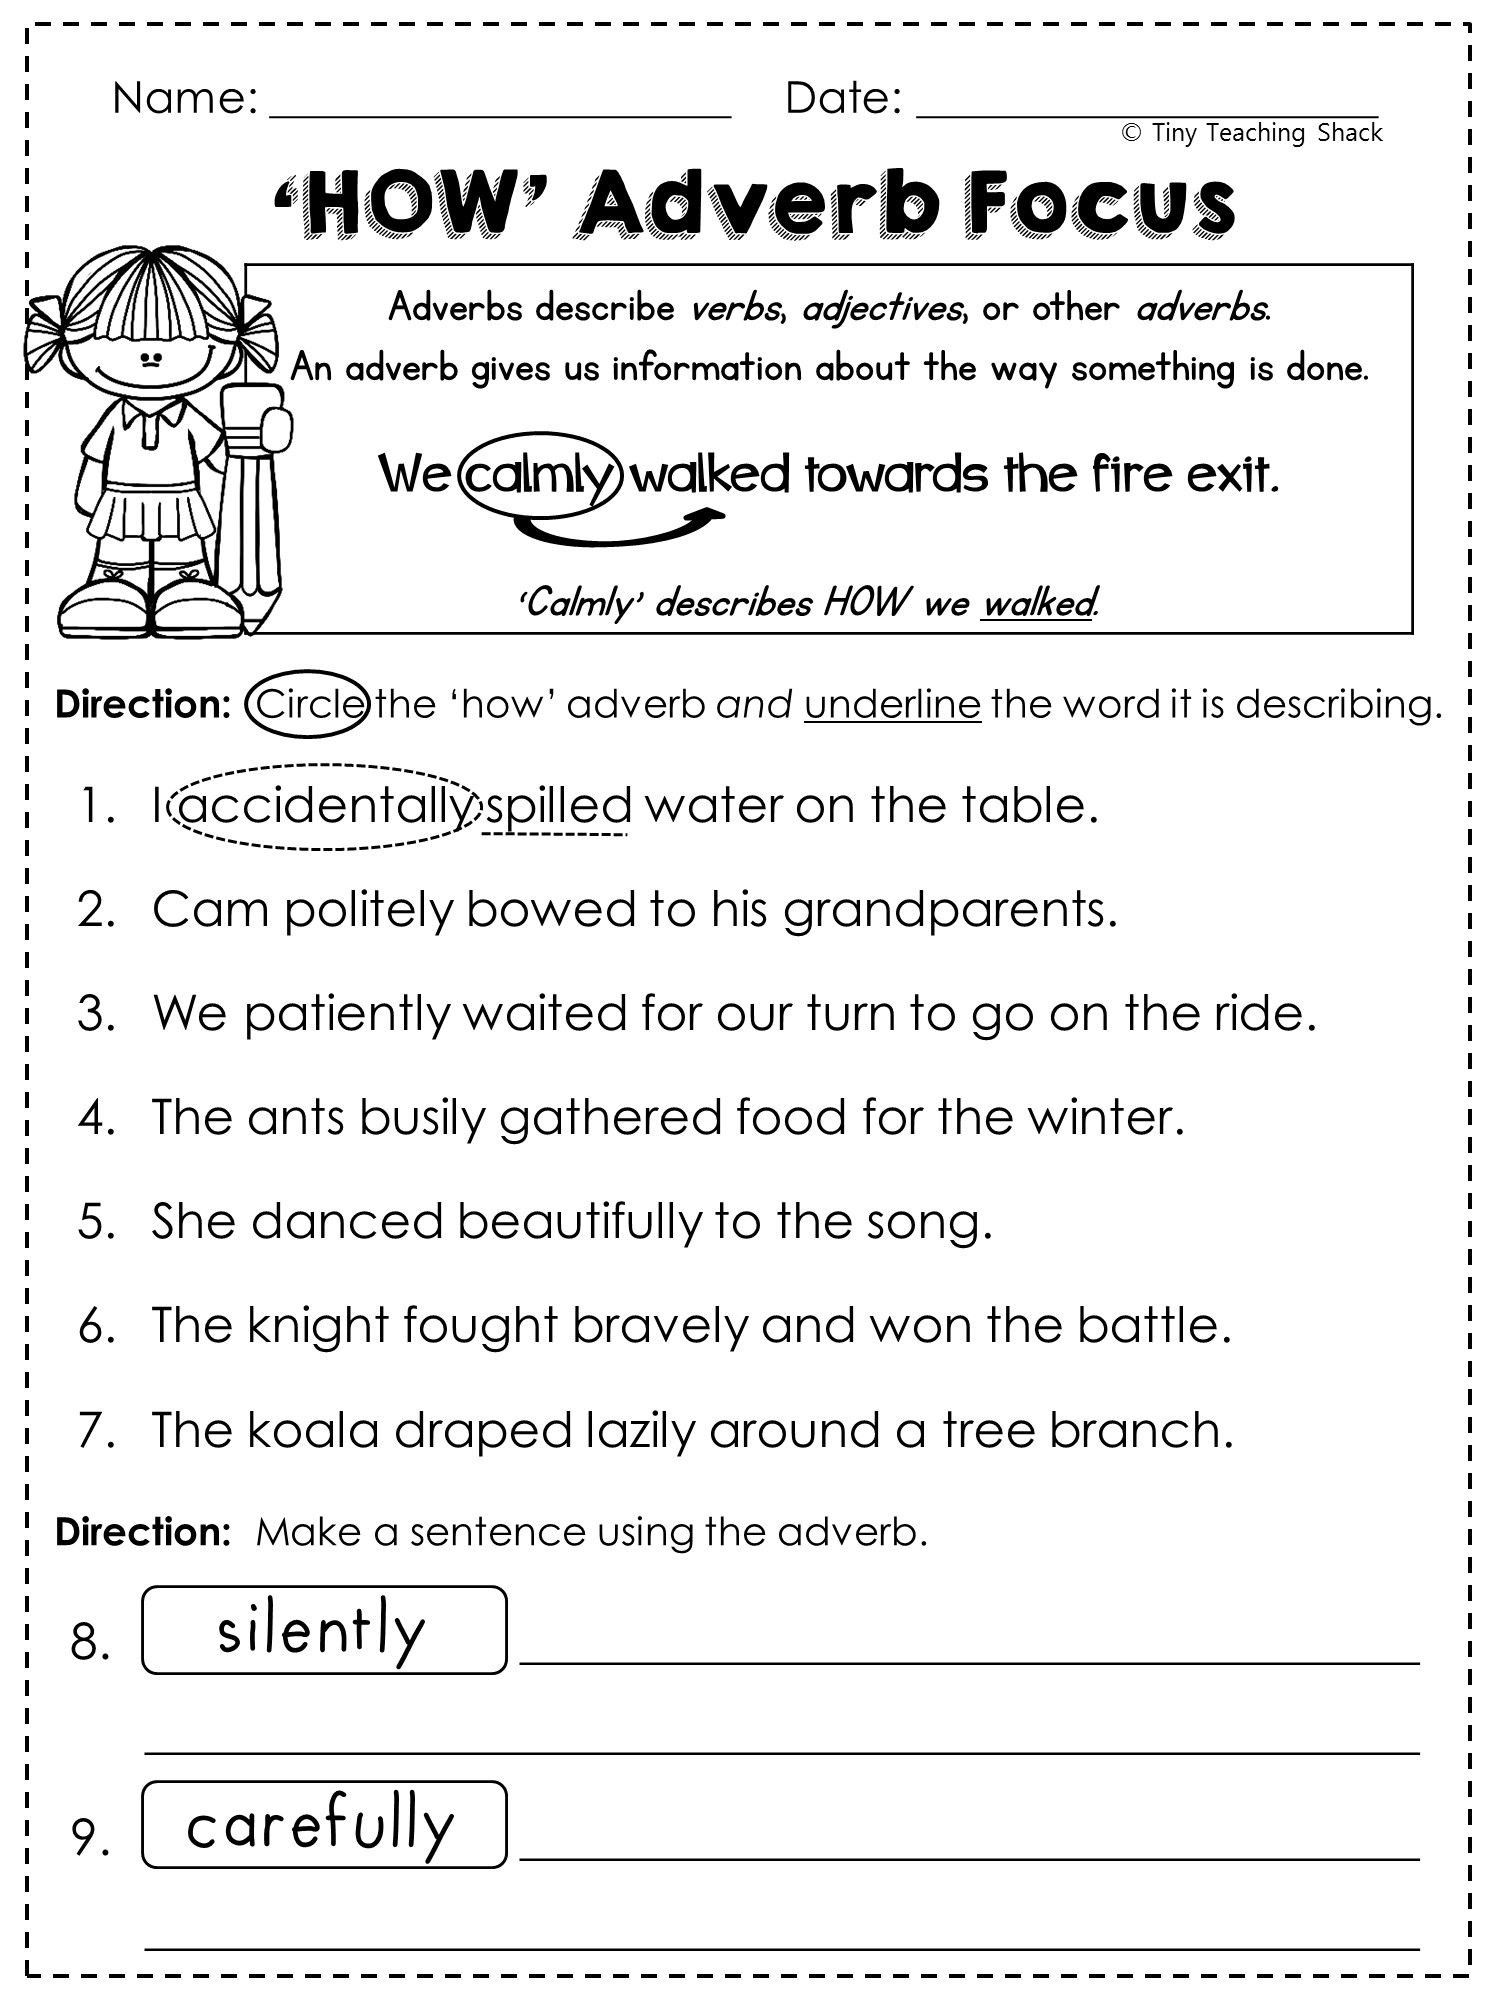 Grammar Worksheet 1st Grade Math Worksheet Grade English Worksheets Printable And In 2021 2nd Grade Worksheets Language Arts Worksheets Third Grade Grammar Worksheets